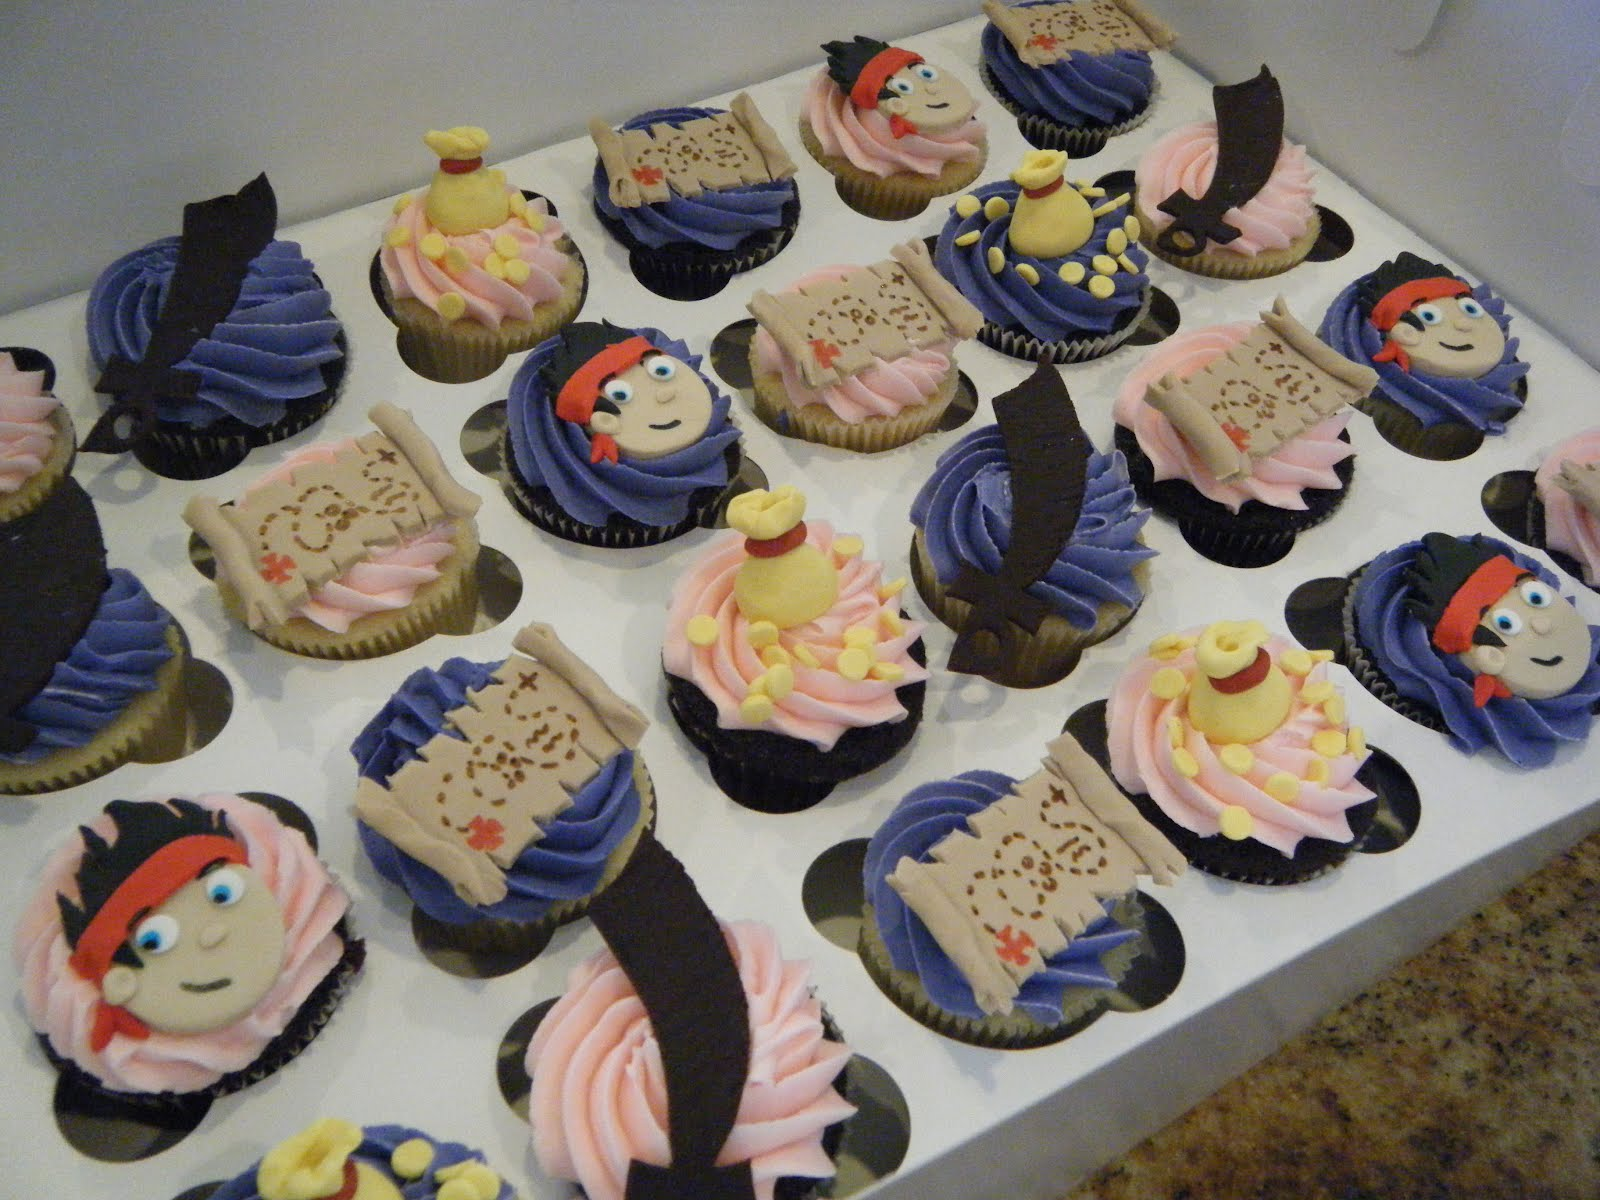 jake and the neverland pirates cupcakes - photo #16